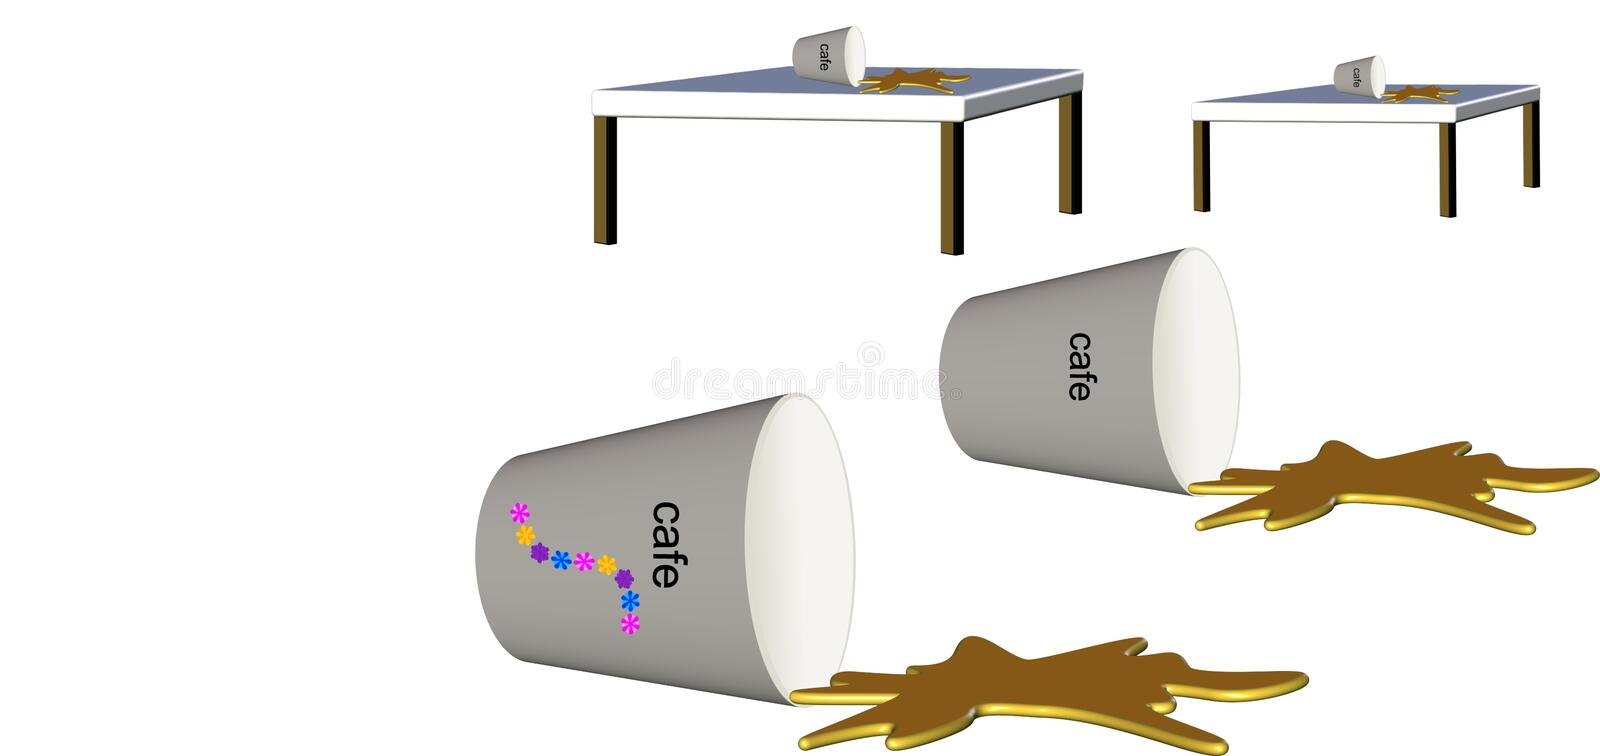 Styrofoam cup spilling coffee on table royalty free illustration